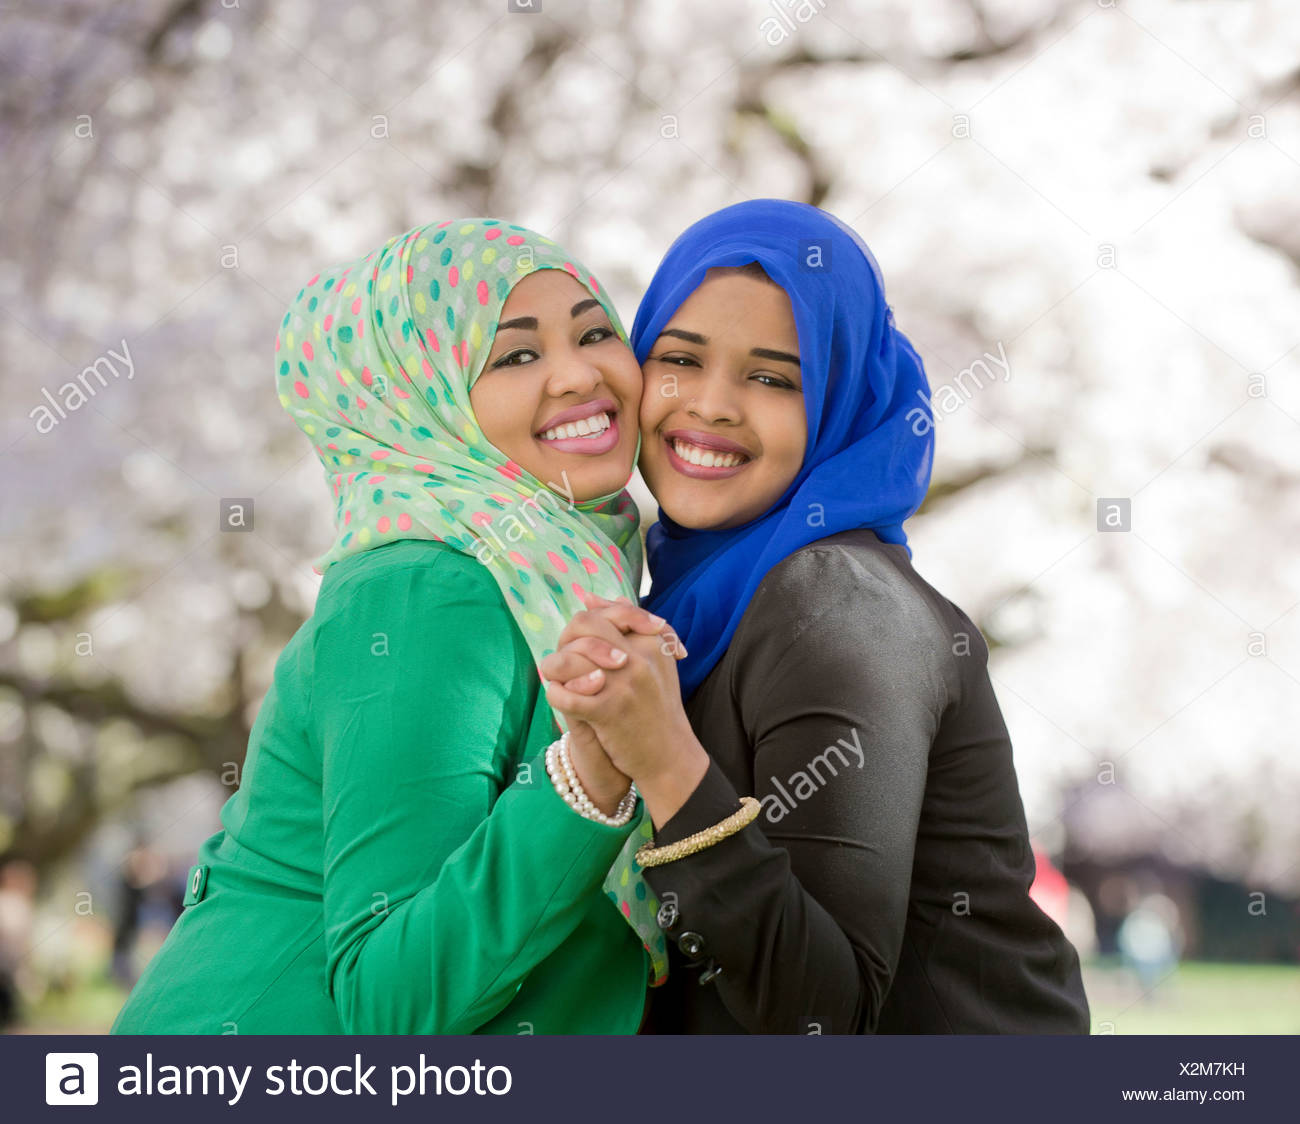 Portrait of two young females in park dancing together - Stock Image